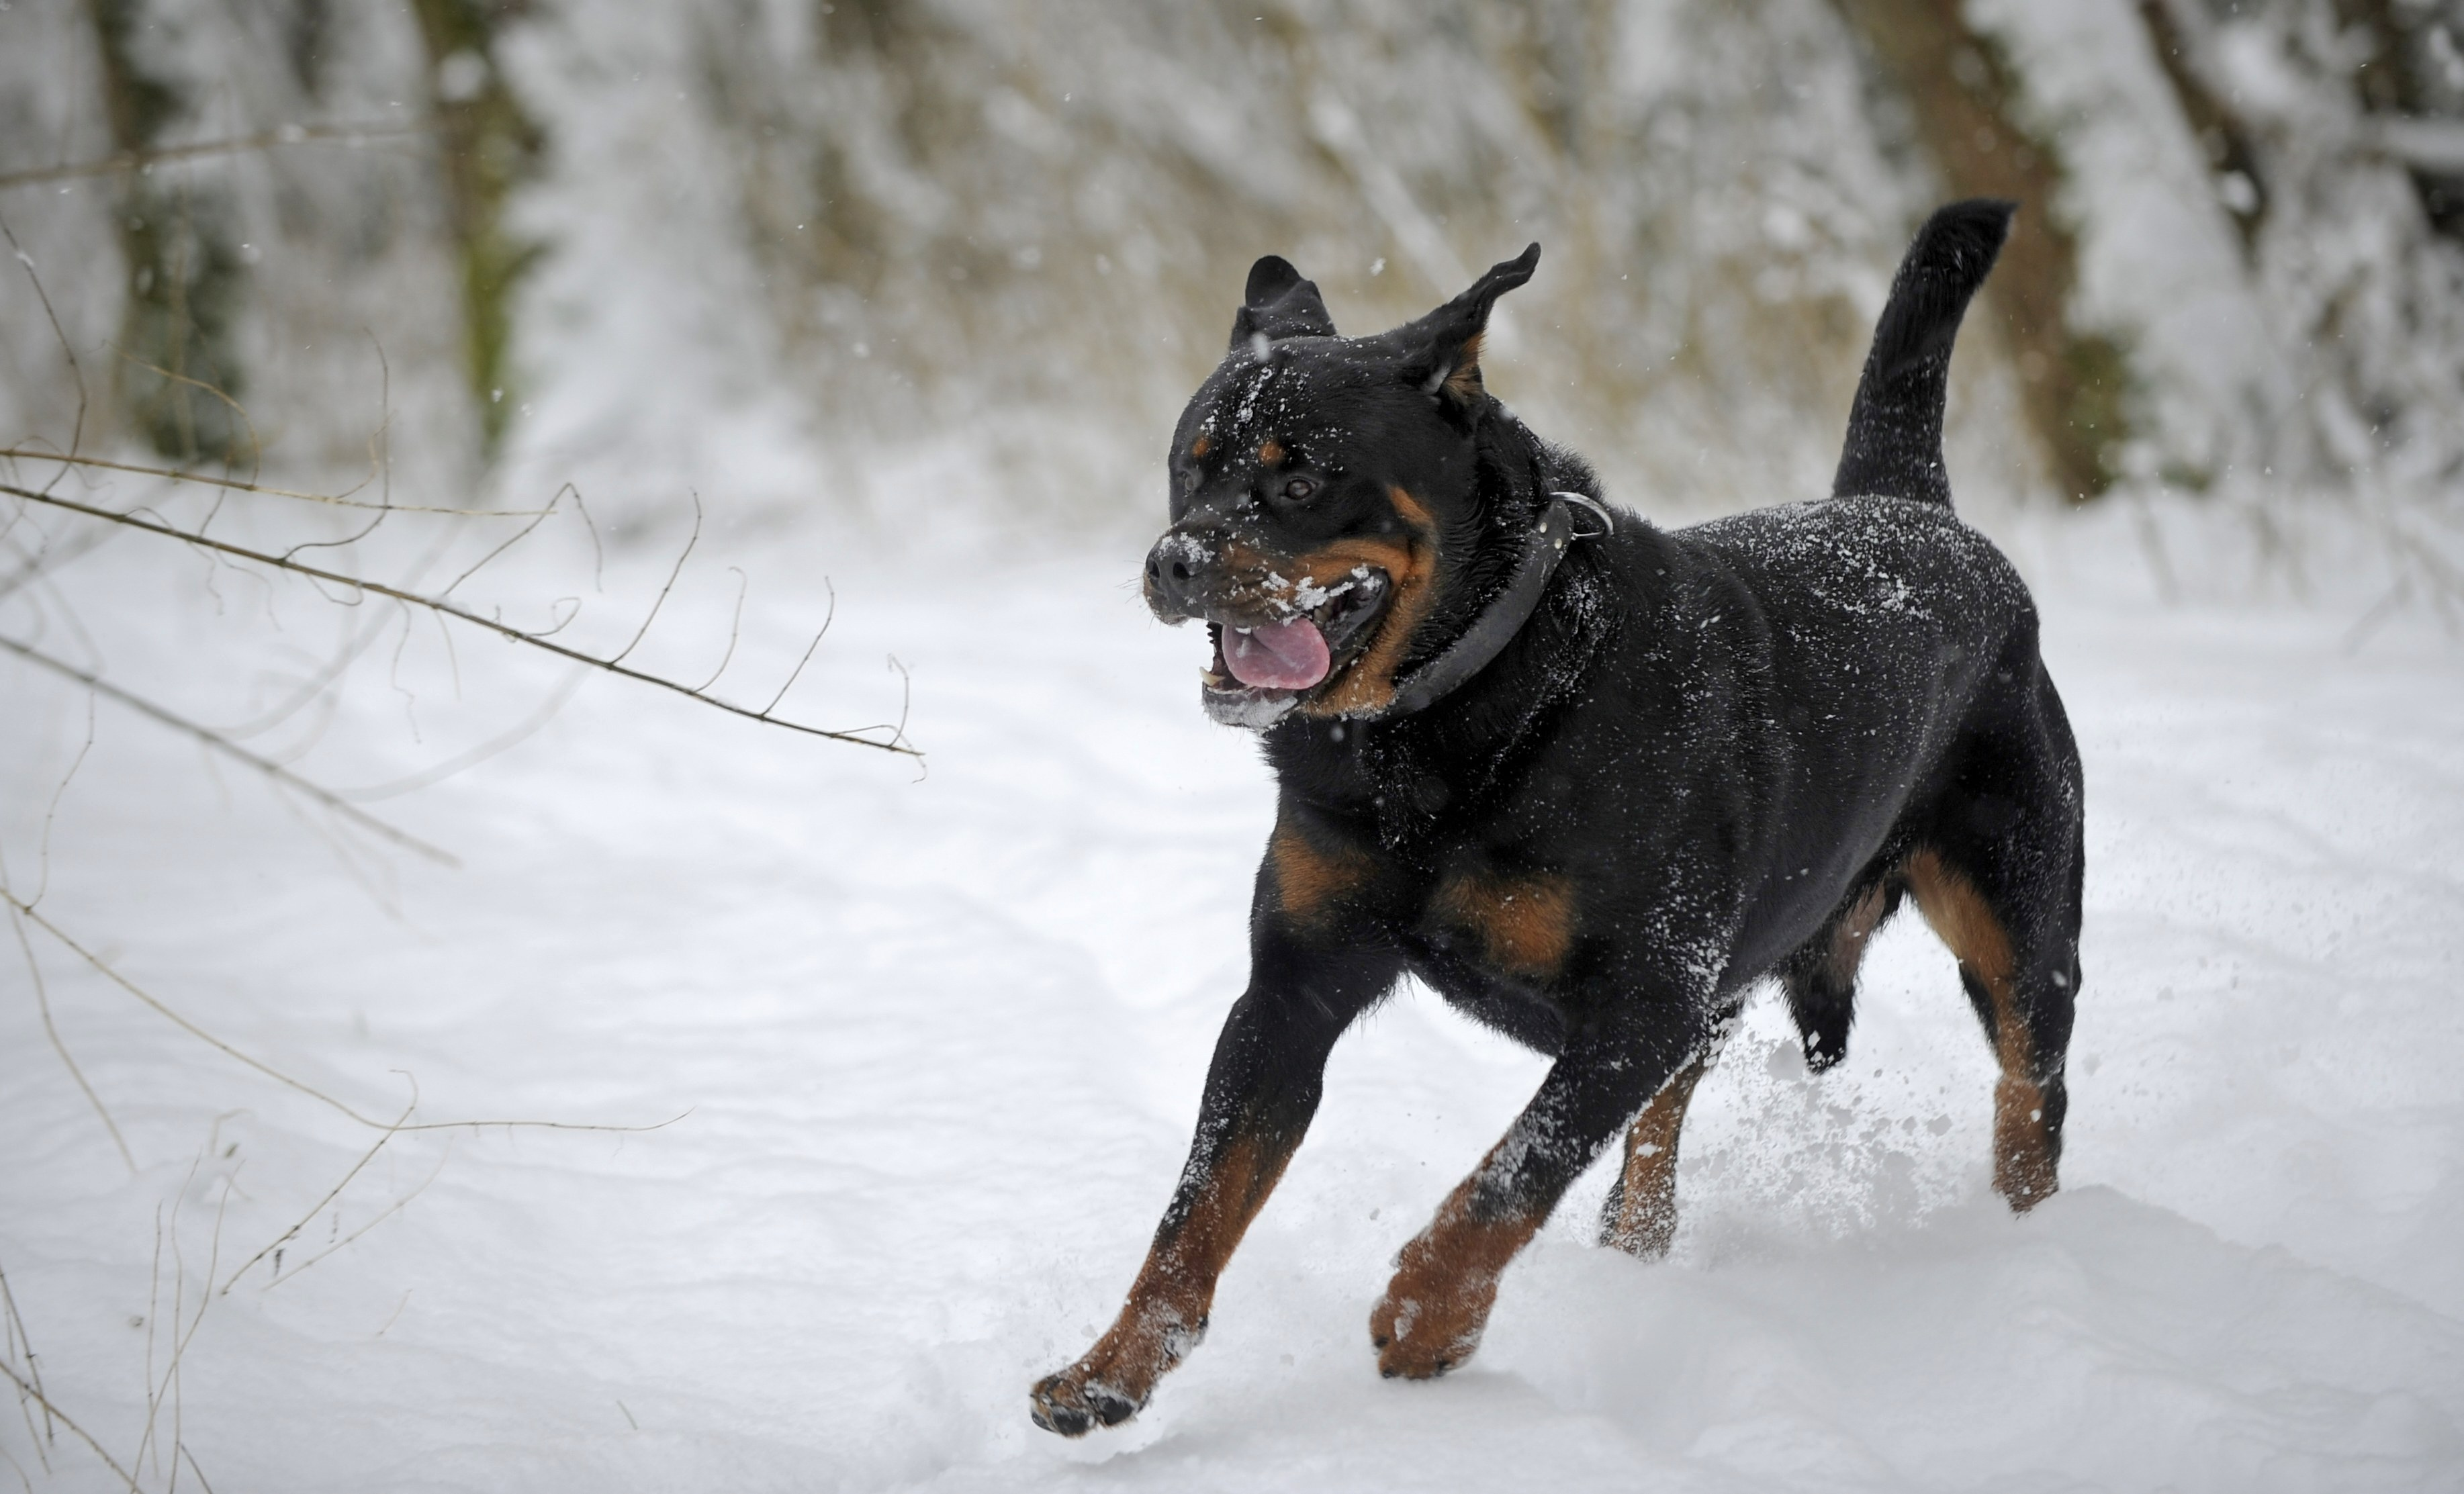 Rottweiler Wallpapers Pictures Images HD Wallpapers Download Free Images Wallpaper [1000image.com]